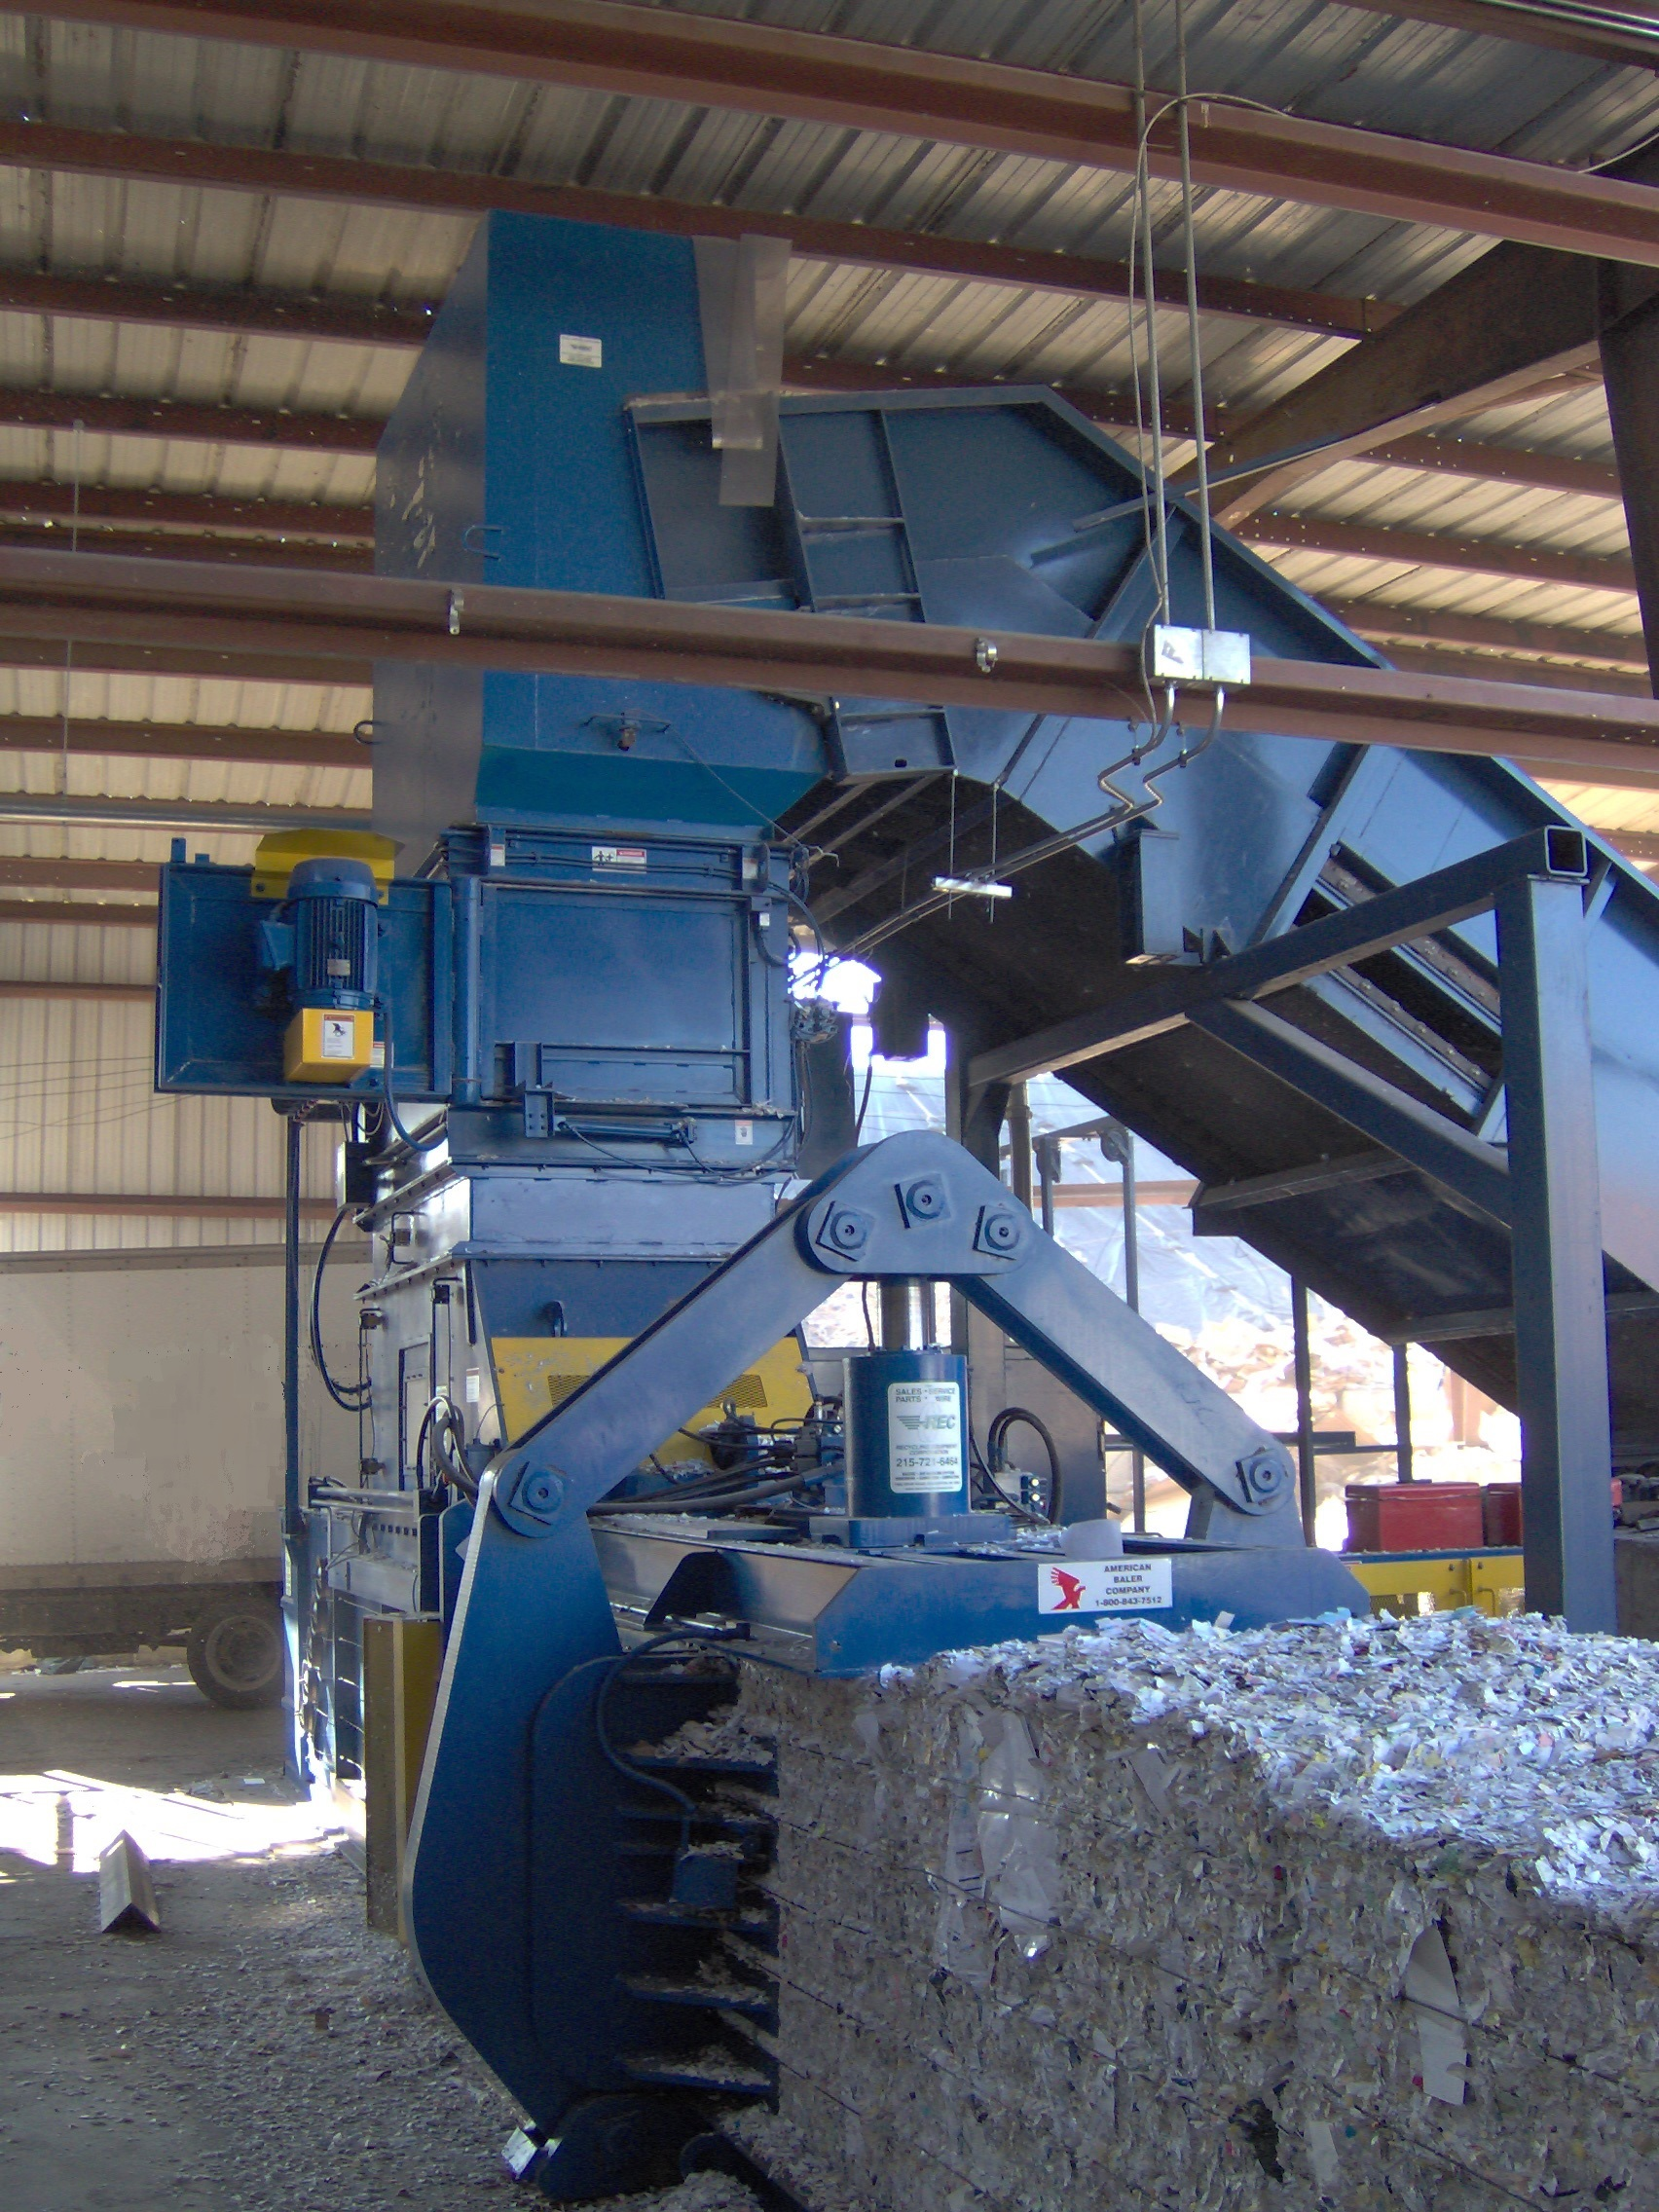 Shown is Model 8543HS Baler